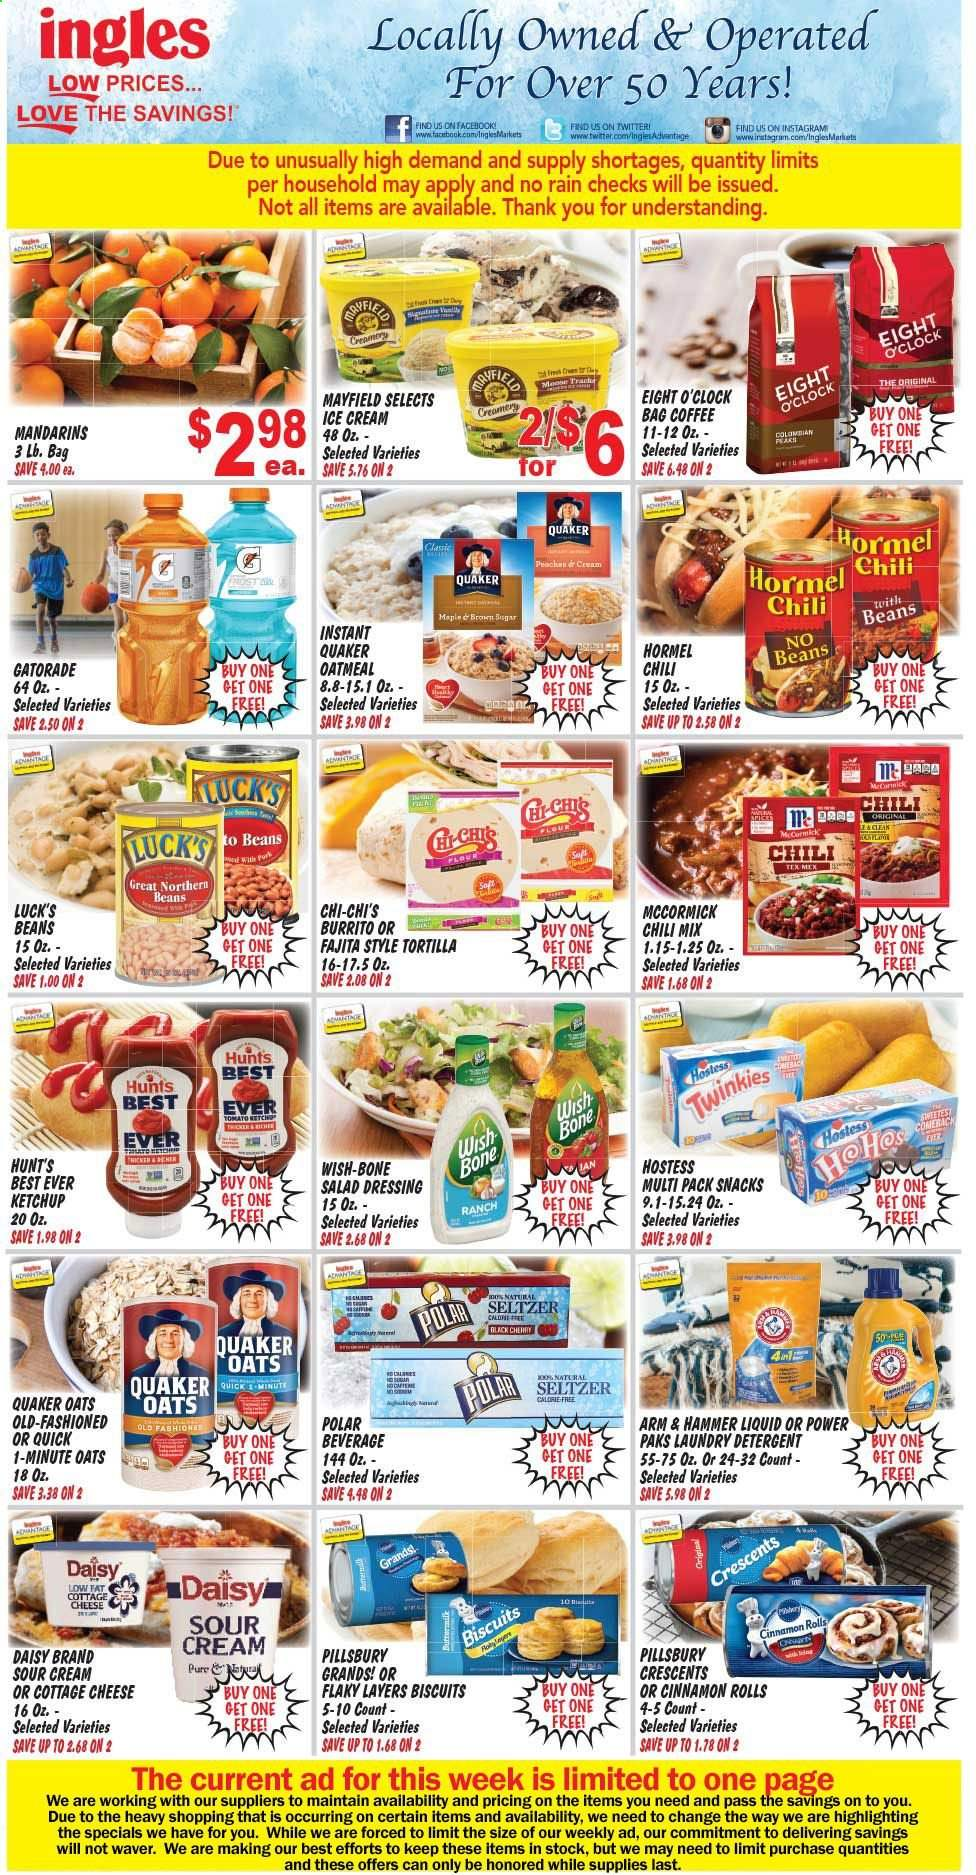 Ingles Flyer - 03.25.2020 - 03.31.2020 - Sales products - tortillas, rolls, cinnamon rolls, Pillsbury, fajita, burrito, Quaker, Hormel, cottage cheese, cheese, sour cream, ice cream, beans, biscuit, snack, ARM & HAMMER, oatmeal, oats, mandarines, salad dressing, ketchup, dressing, Gatorade, seltzer water, coffee, Eight O'Clock, detergent, laundry detergent. Page 1.